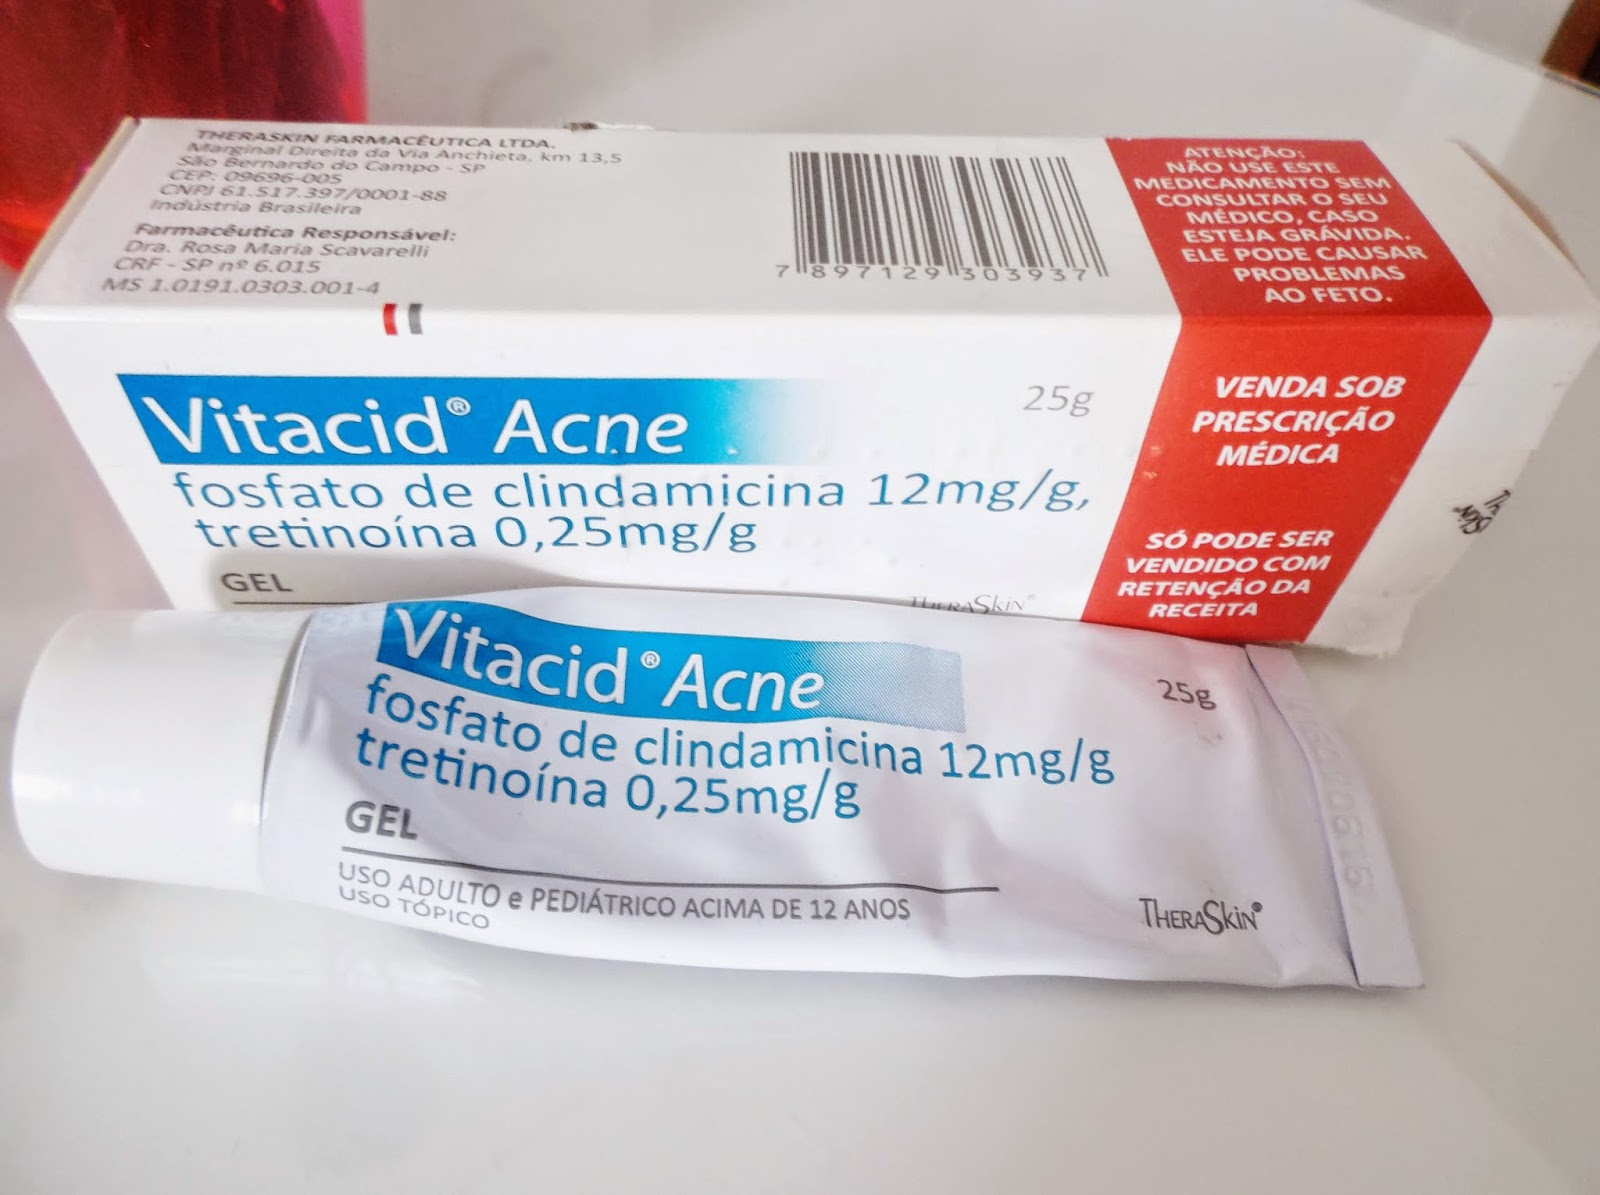 Acne.org - Acne Community & Acne Treatment Store